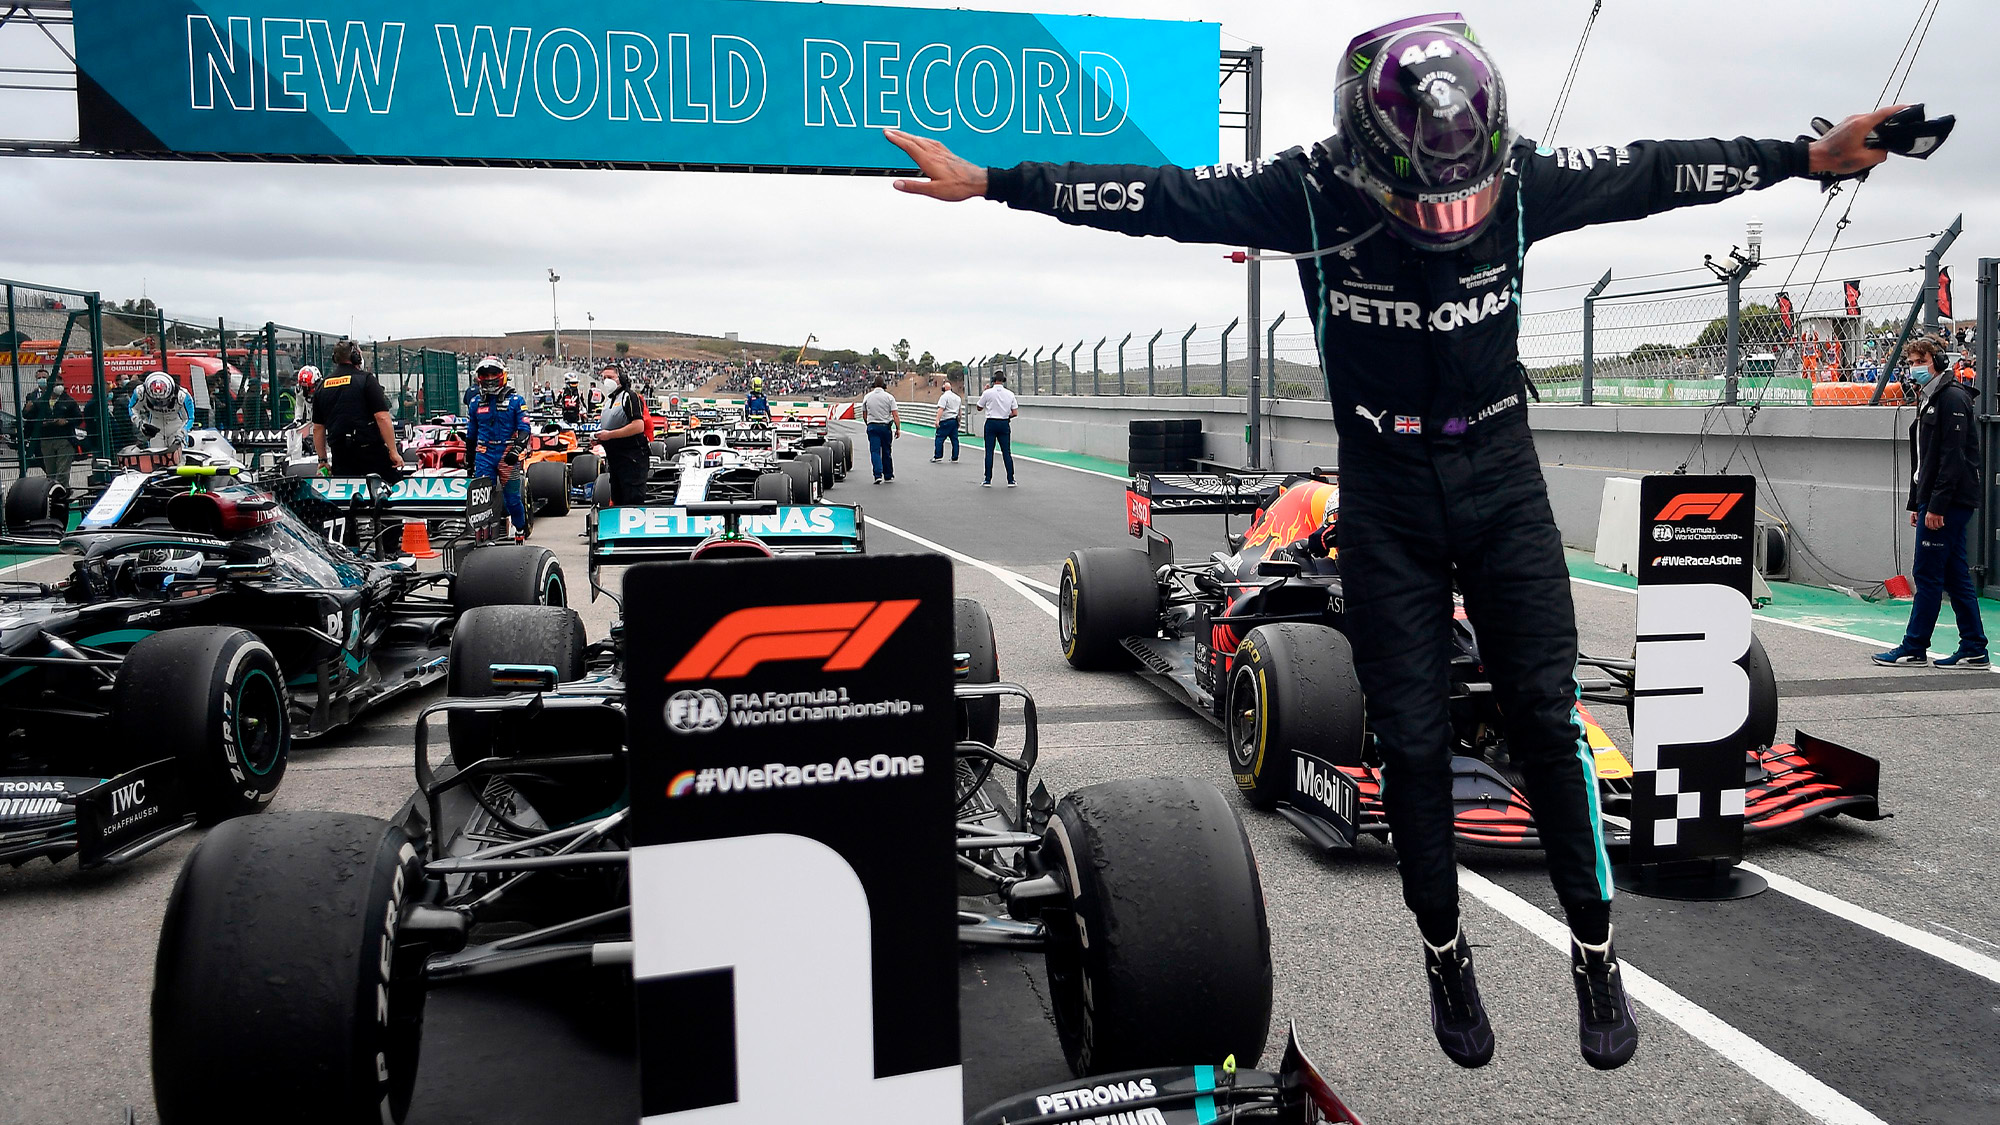 Lewis Hamilton leaps out of his Mercedes after securing a record 92nd victory in Portimao at the 2020 Portuguese Grand Prix